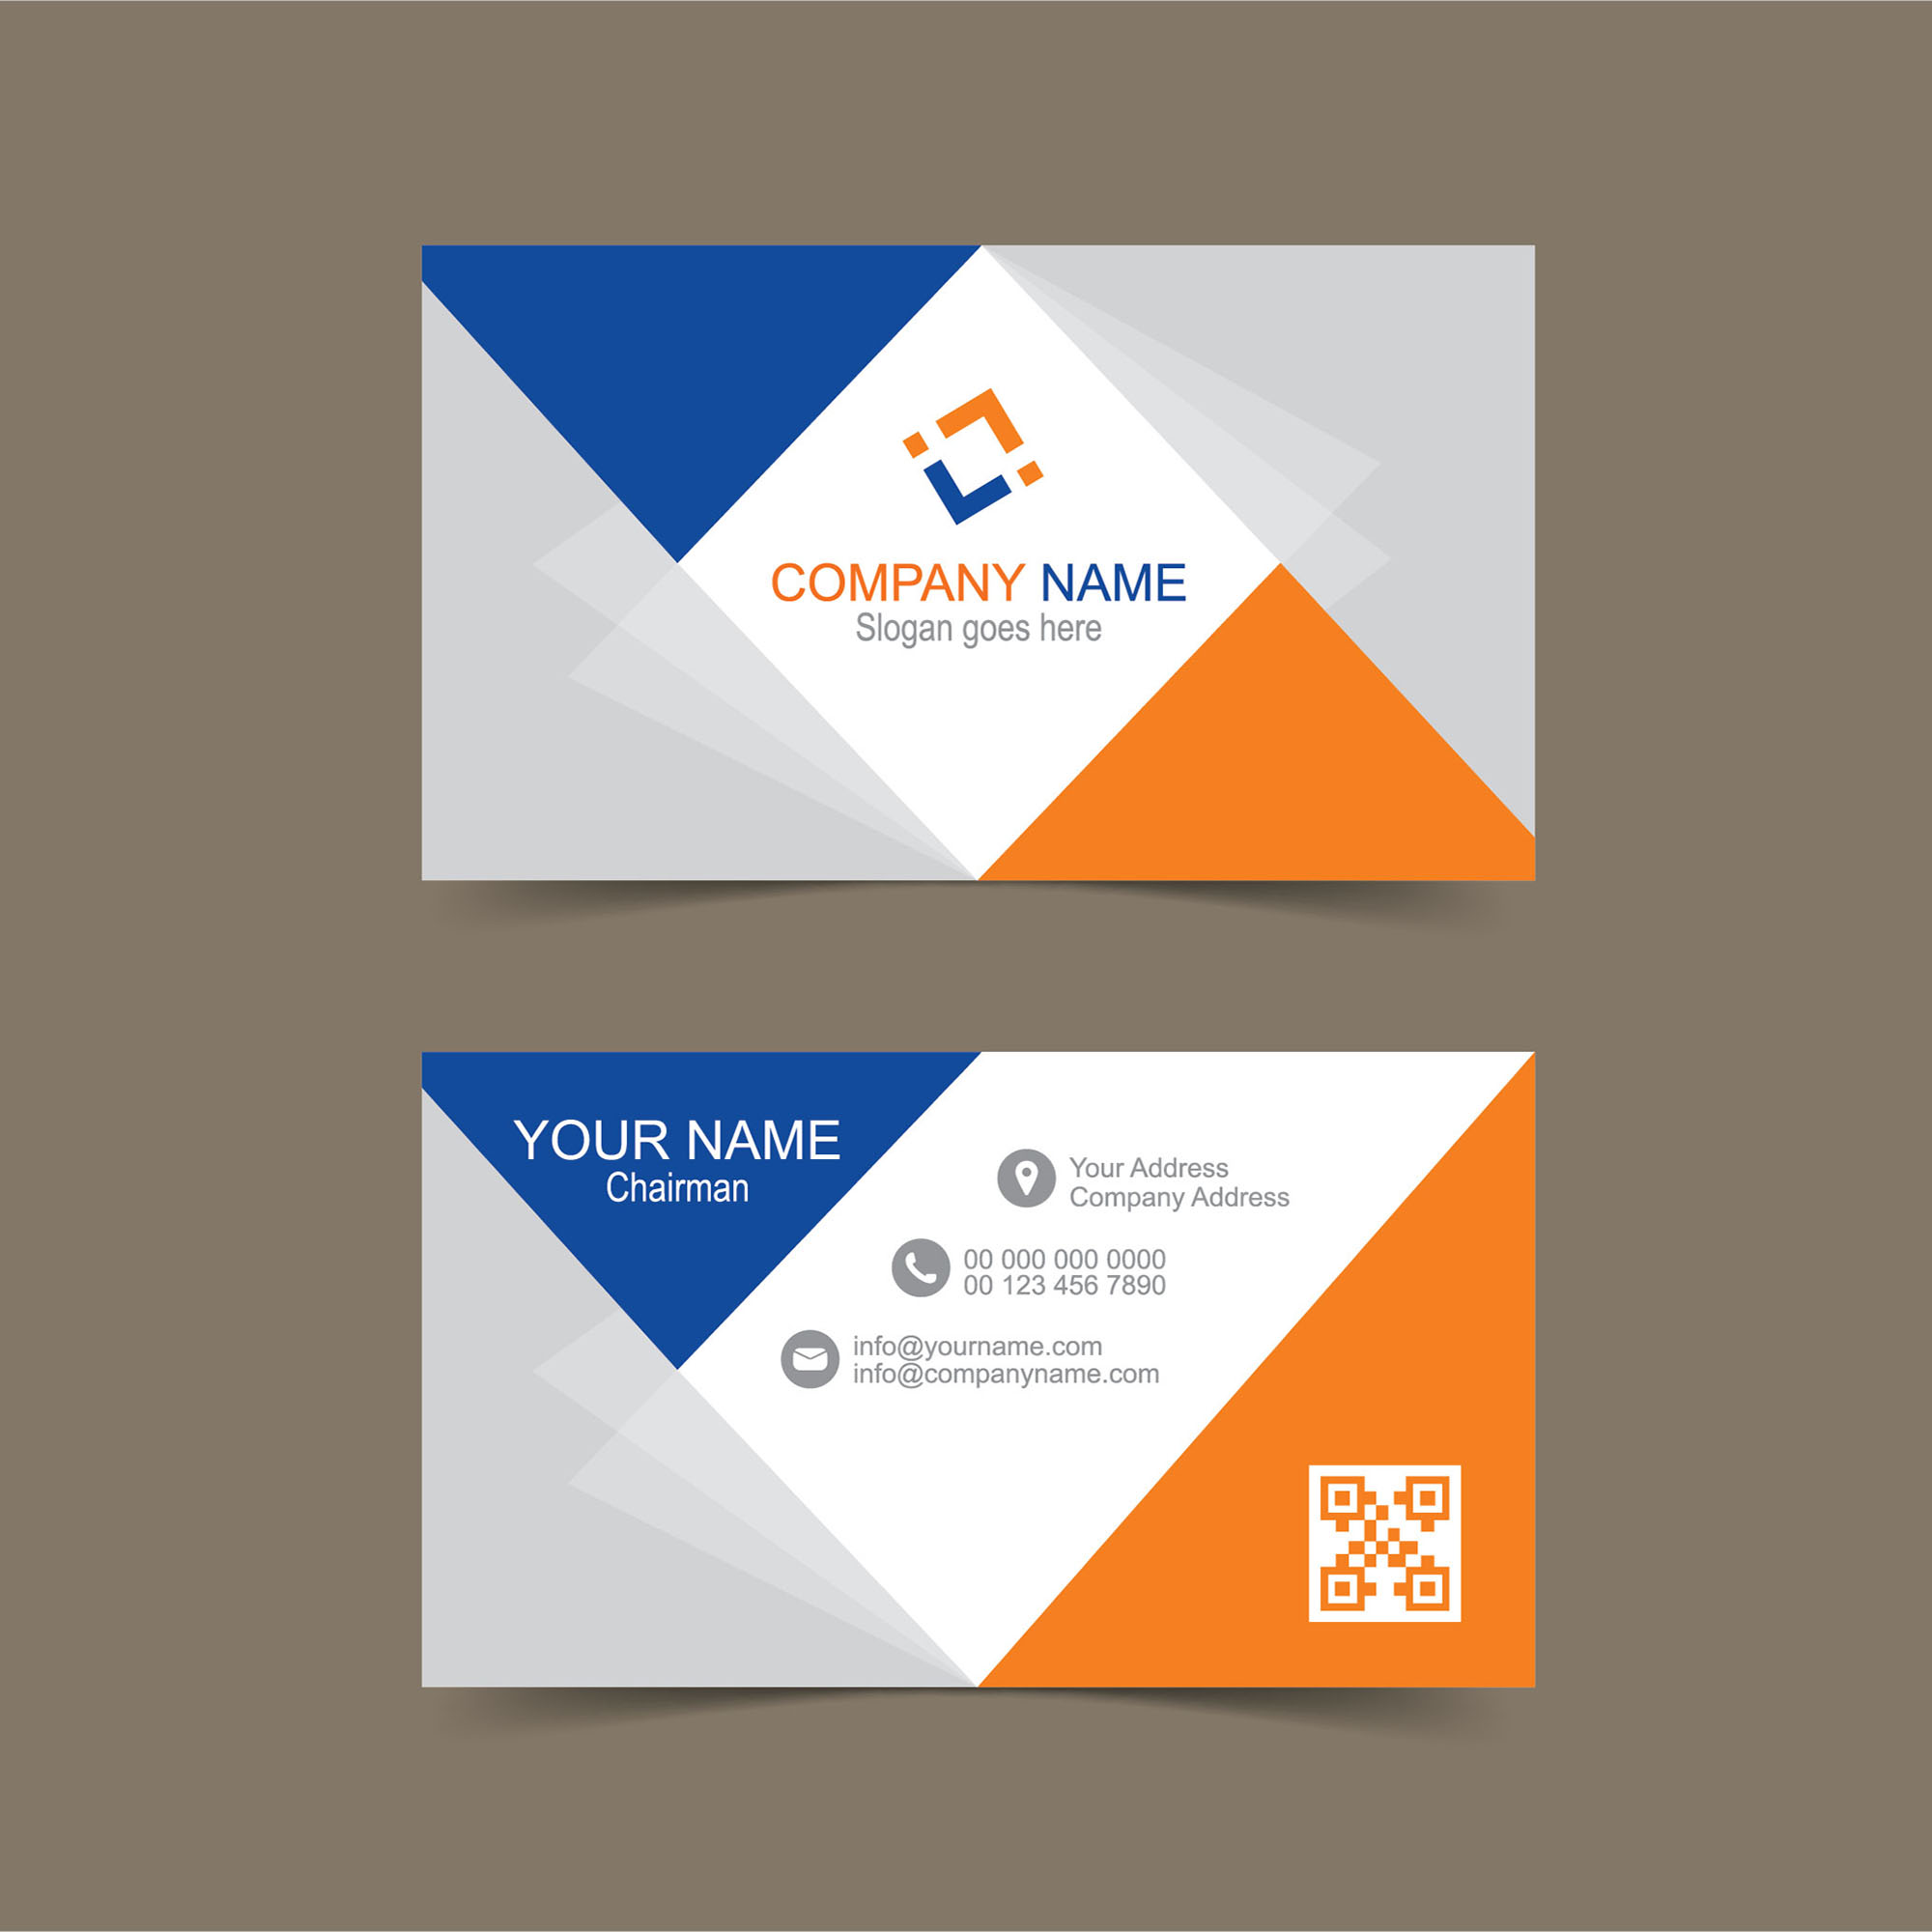 Free business card template for illustrator wisxi business card business cards business card design business card template design templates fbccfo Gallery